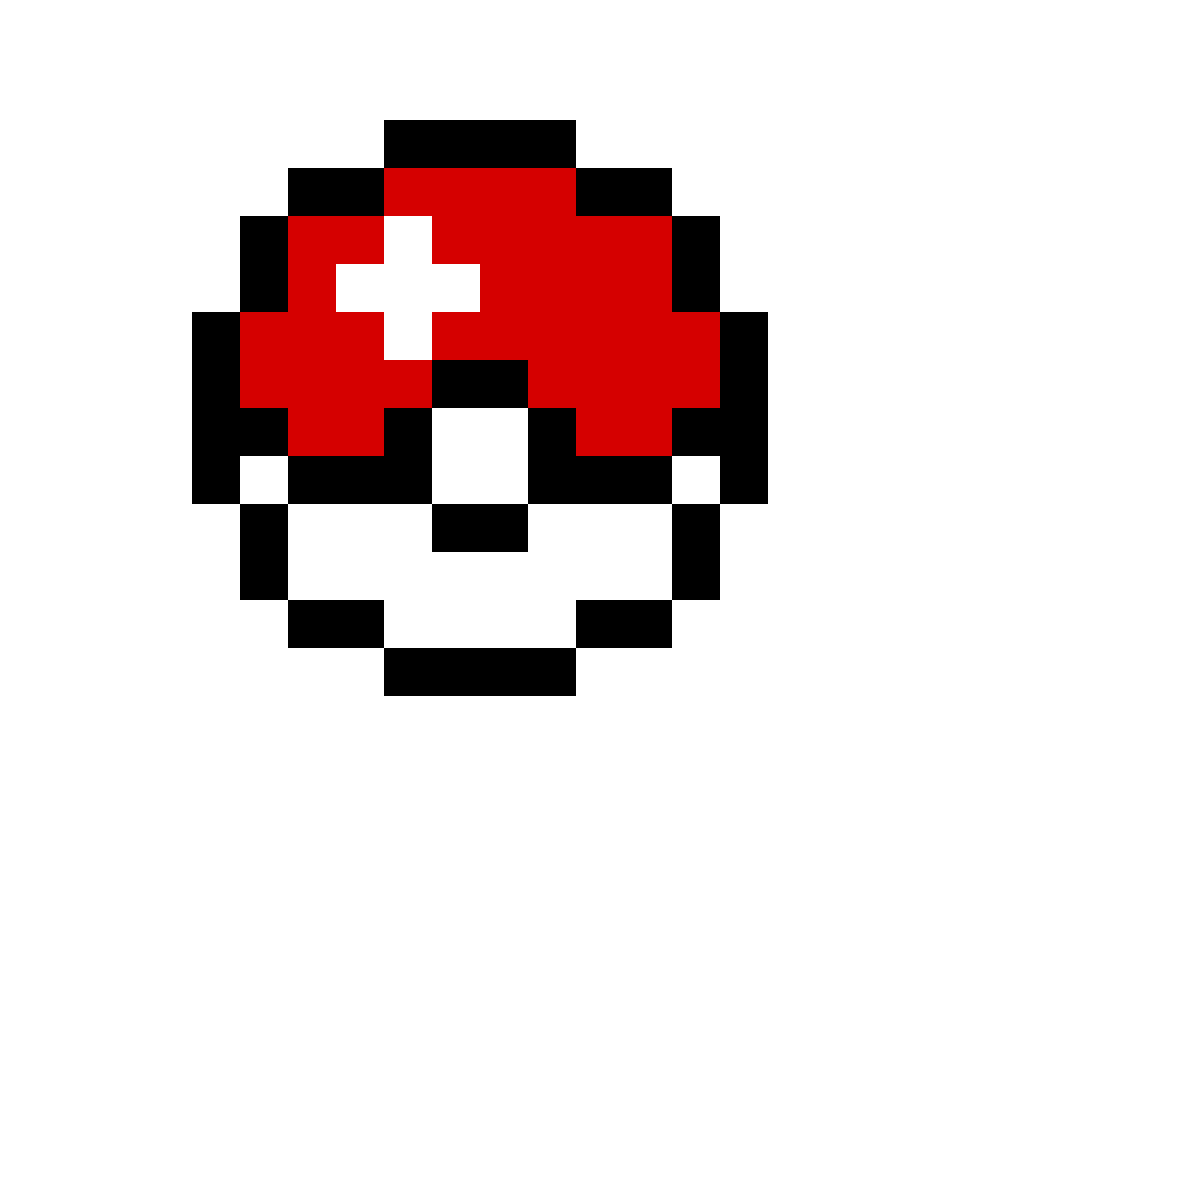 Pixilart by powerful pickle. Pokeball clipart 8 bit